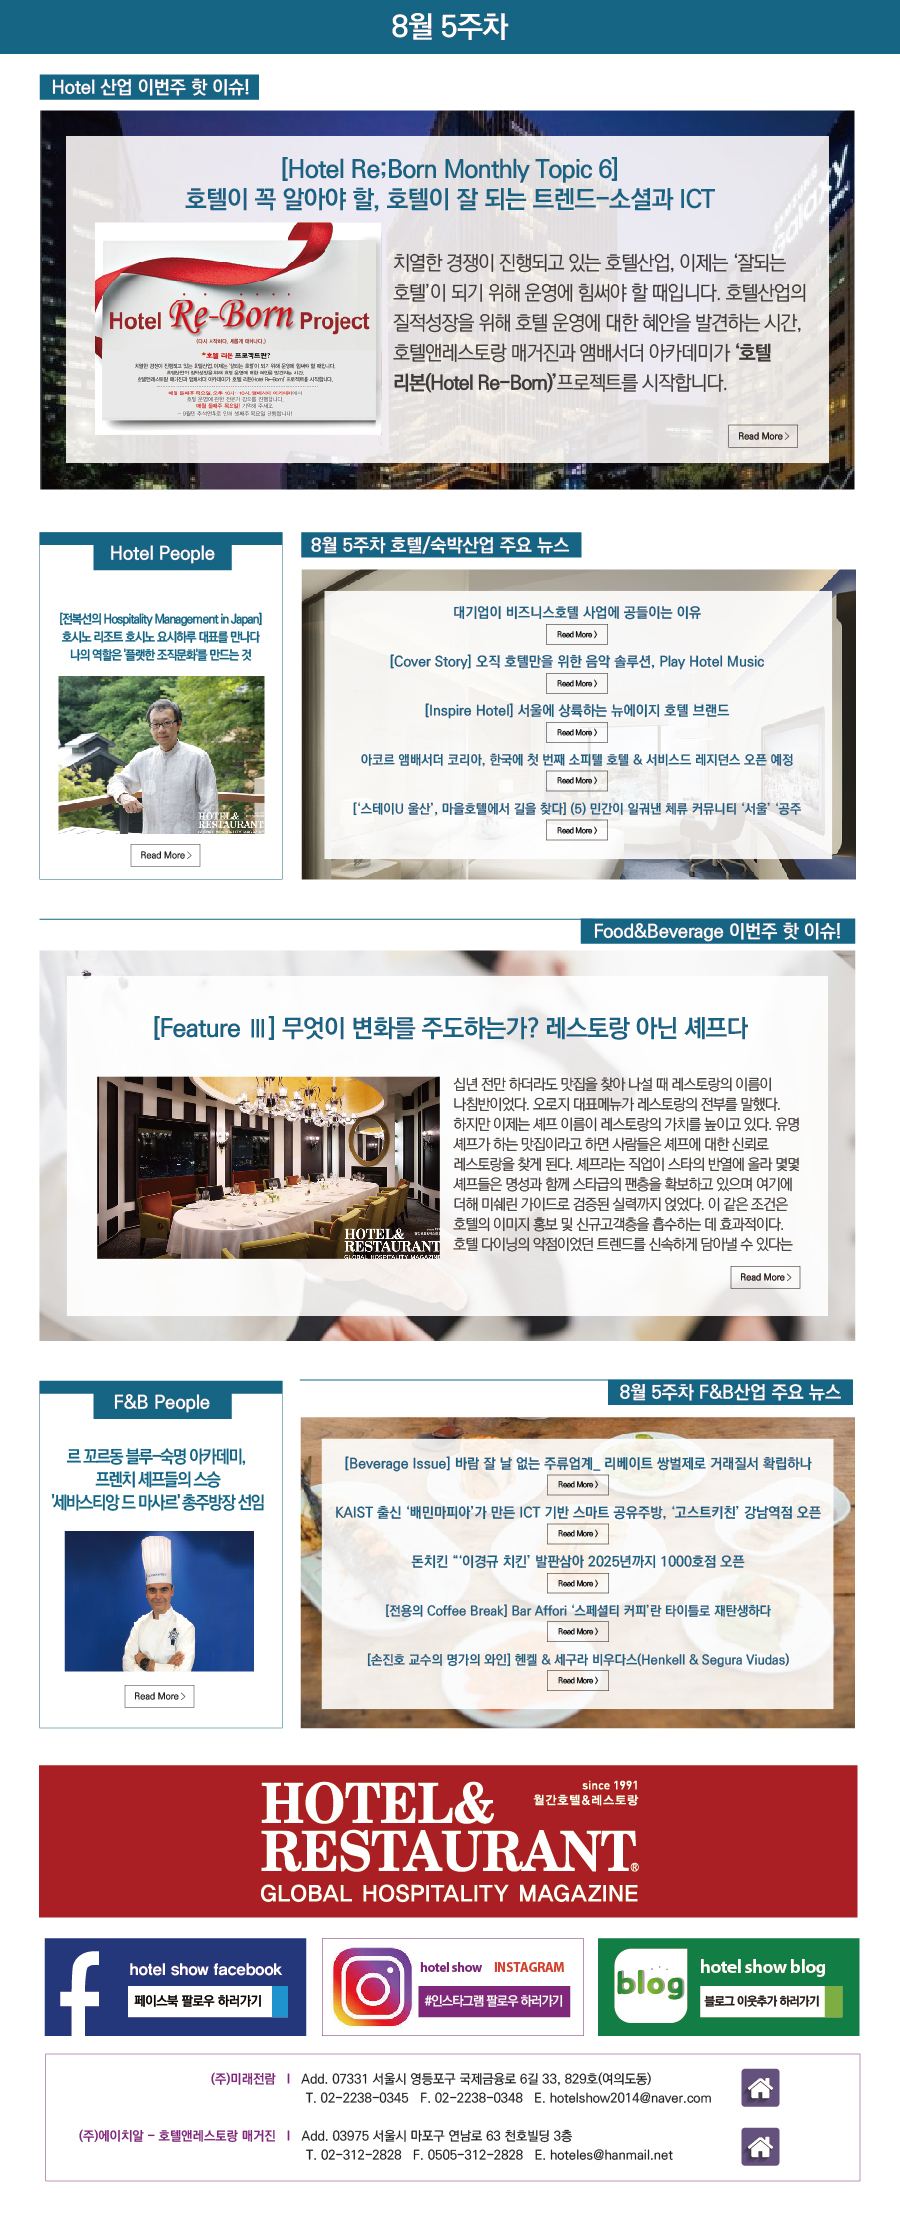 http://www.hotelshow.co.kr/img_up/shop_pds/hotelshow/bbs/board3/add_img/2019/kakaotalk_20190902_1400502781567401020.jpg